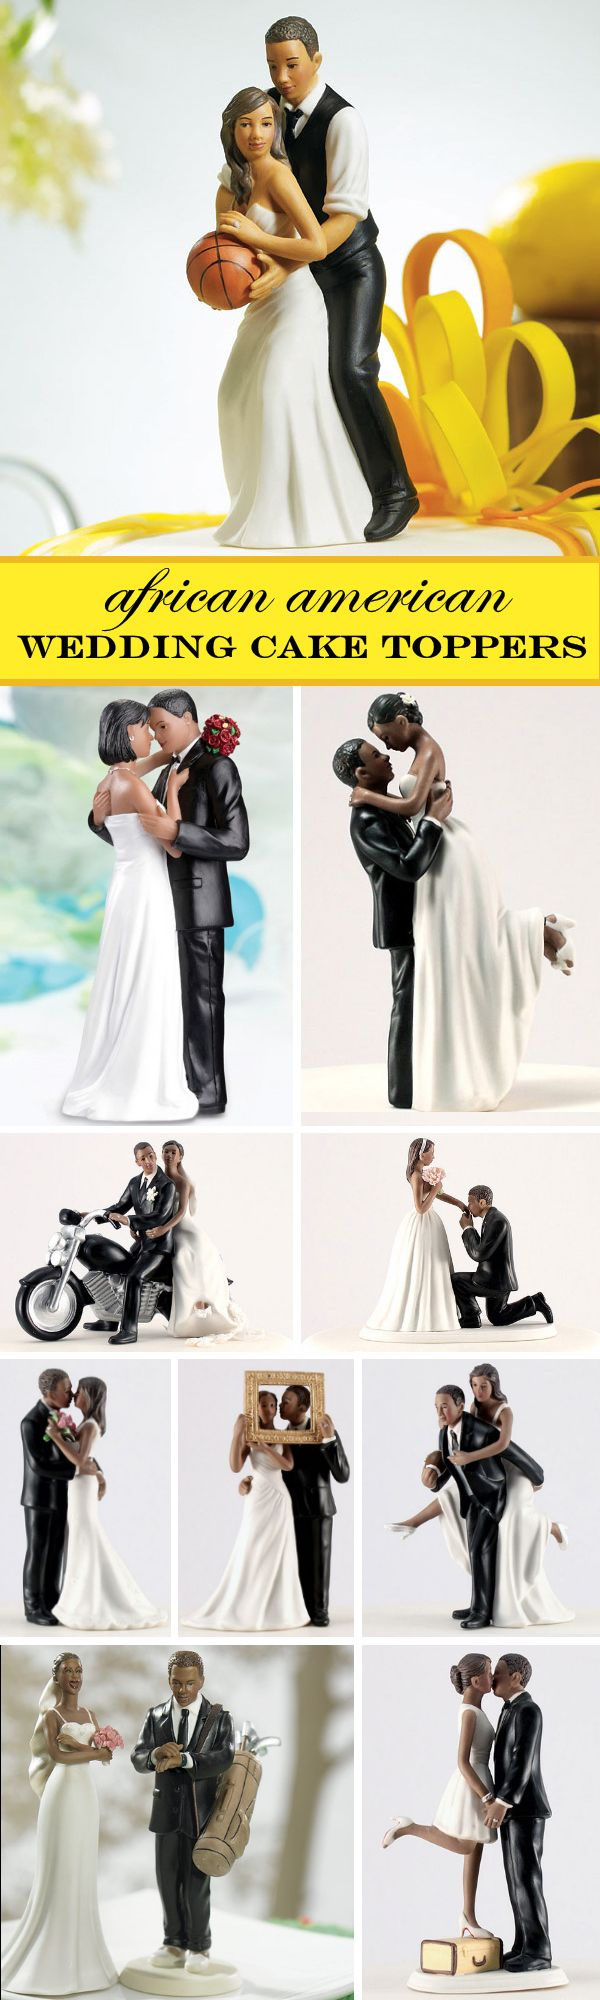 African American Bride and Groom Cake Topper $47.81 | I DO ...